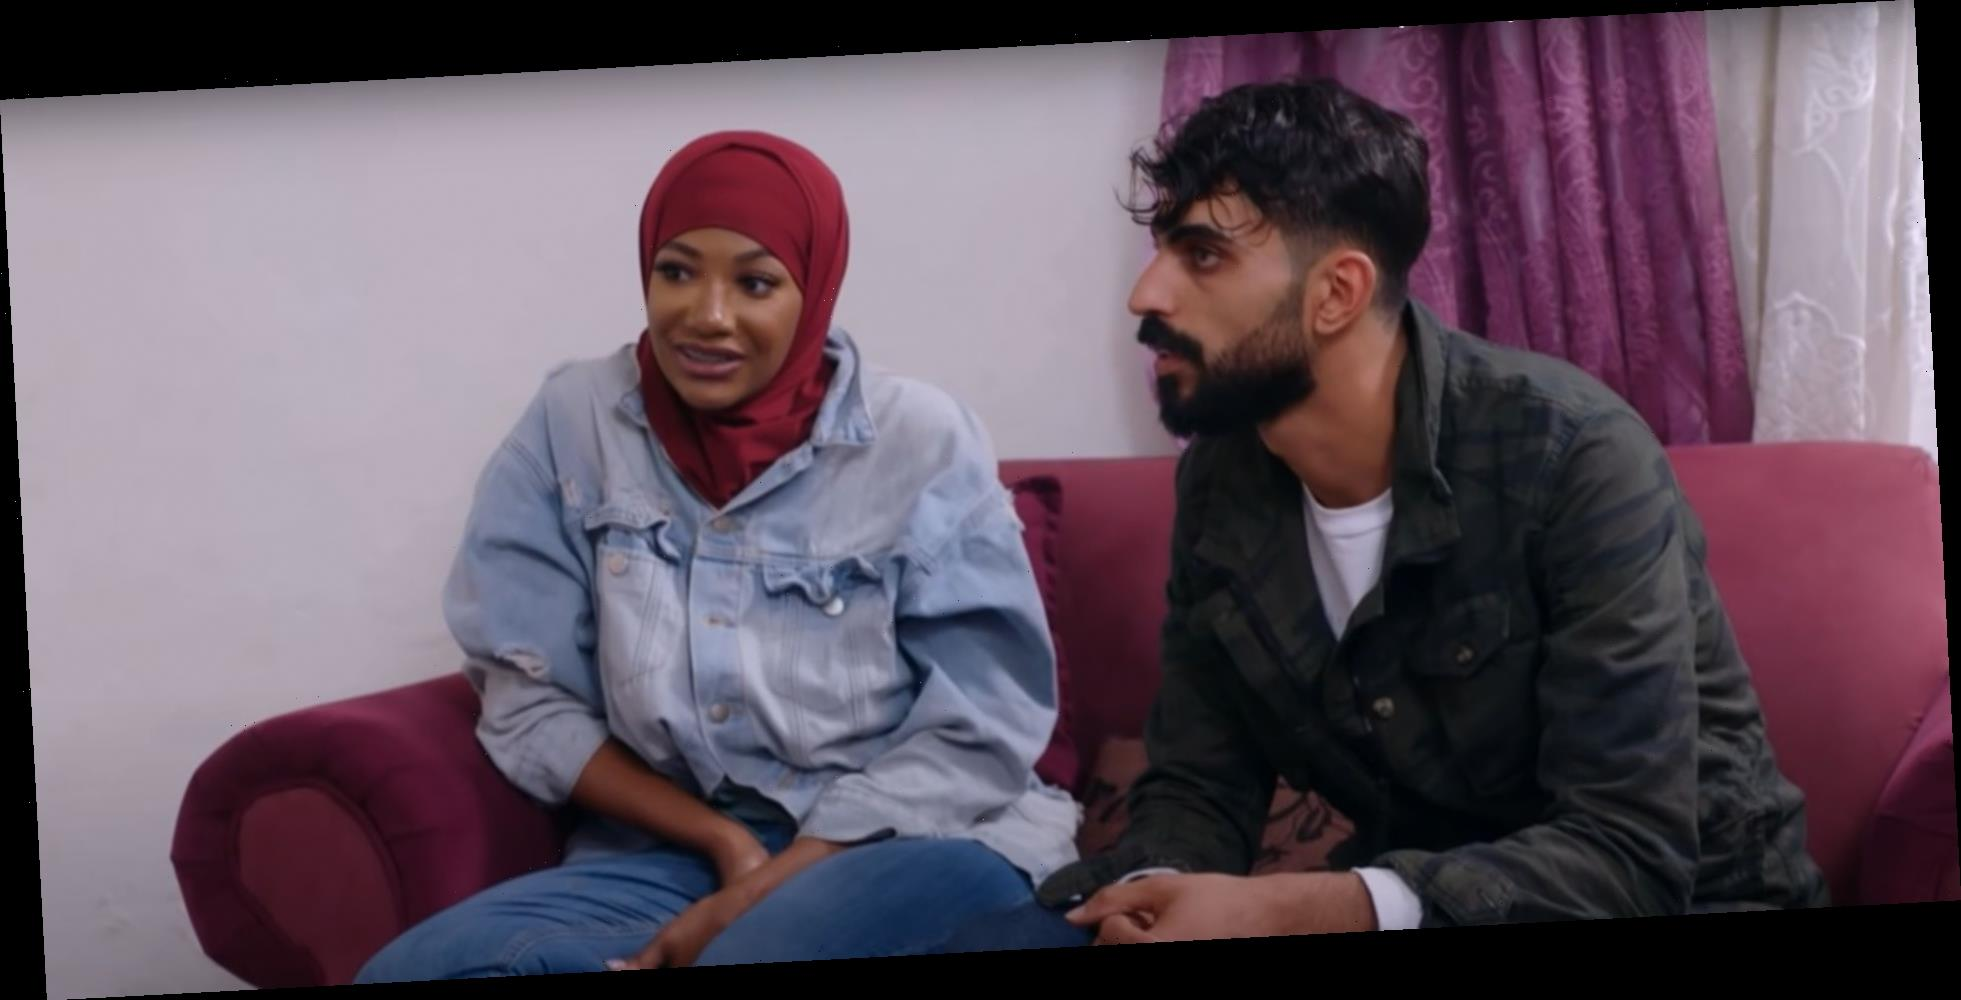 '90 Day Fiancé': Brittany Banks Tells Haters to 'Suck a D*ck' Among Ongoing Concerns Over Yazan